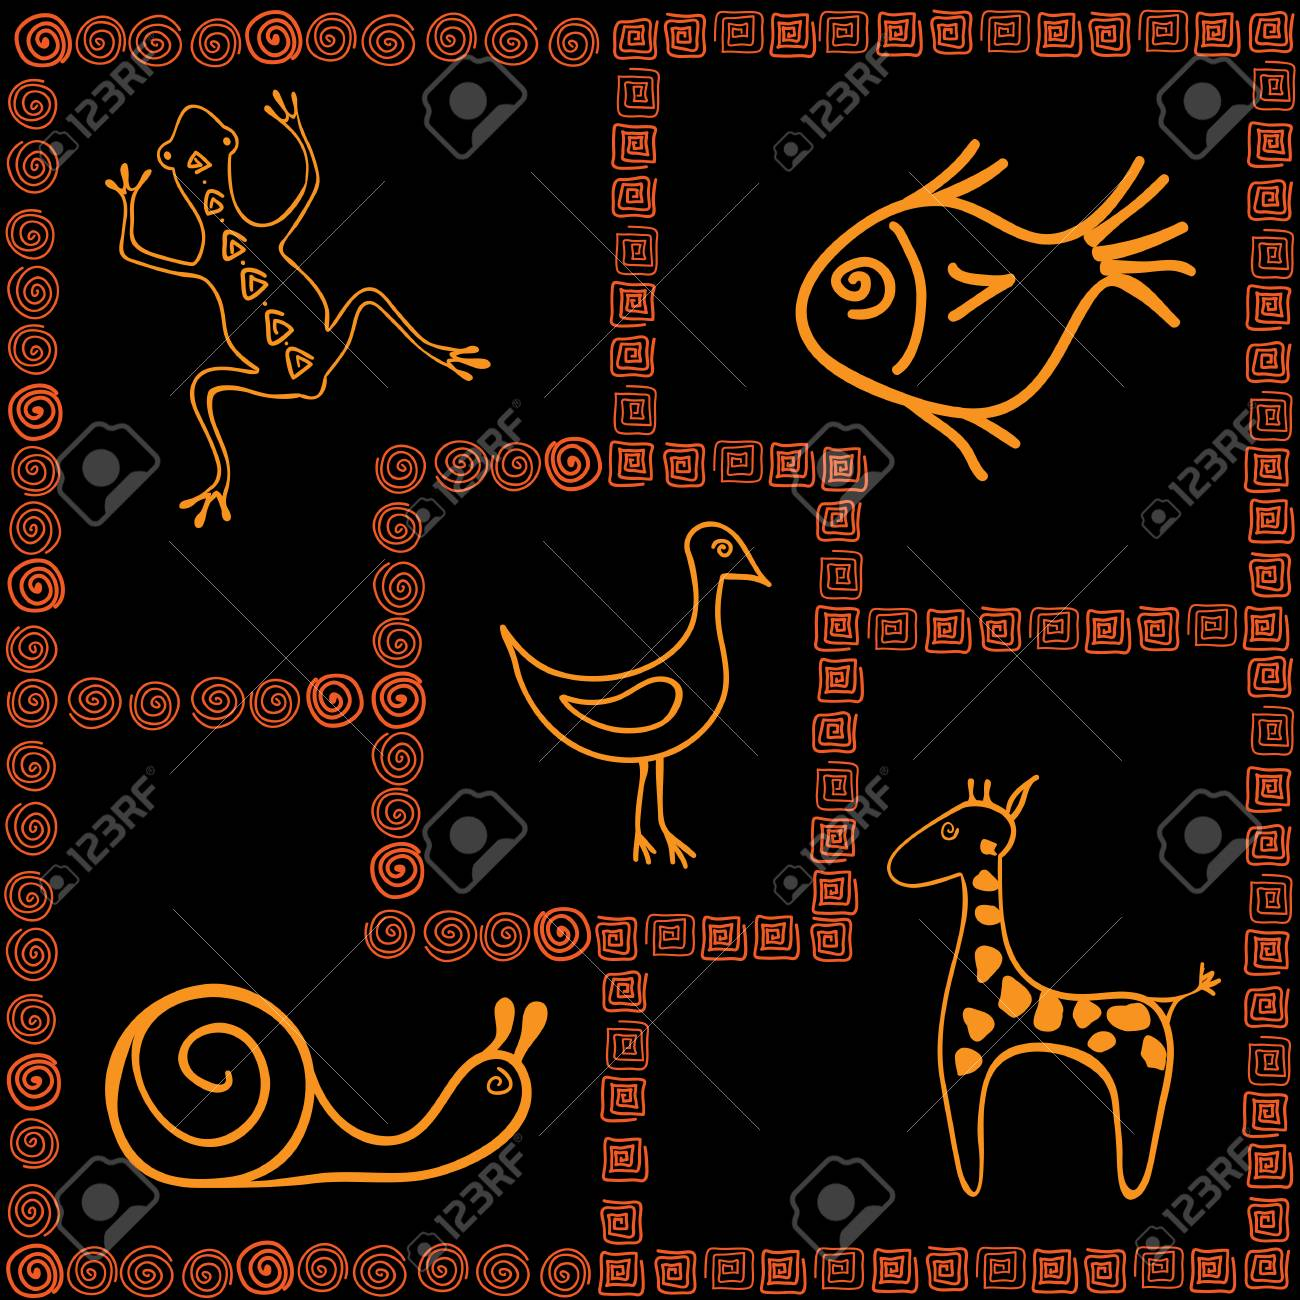 Frames With Pictures In African Style Royalty Free Klipartlar ...